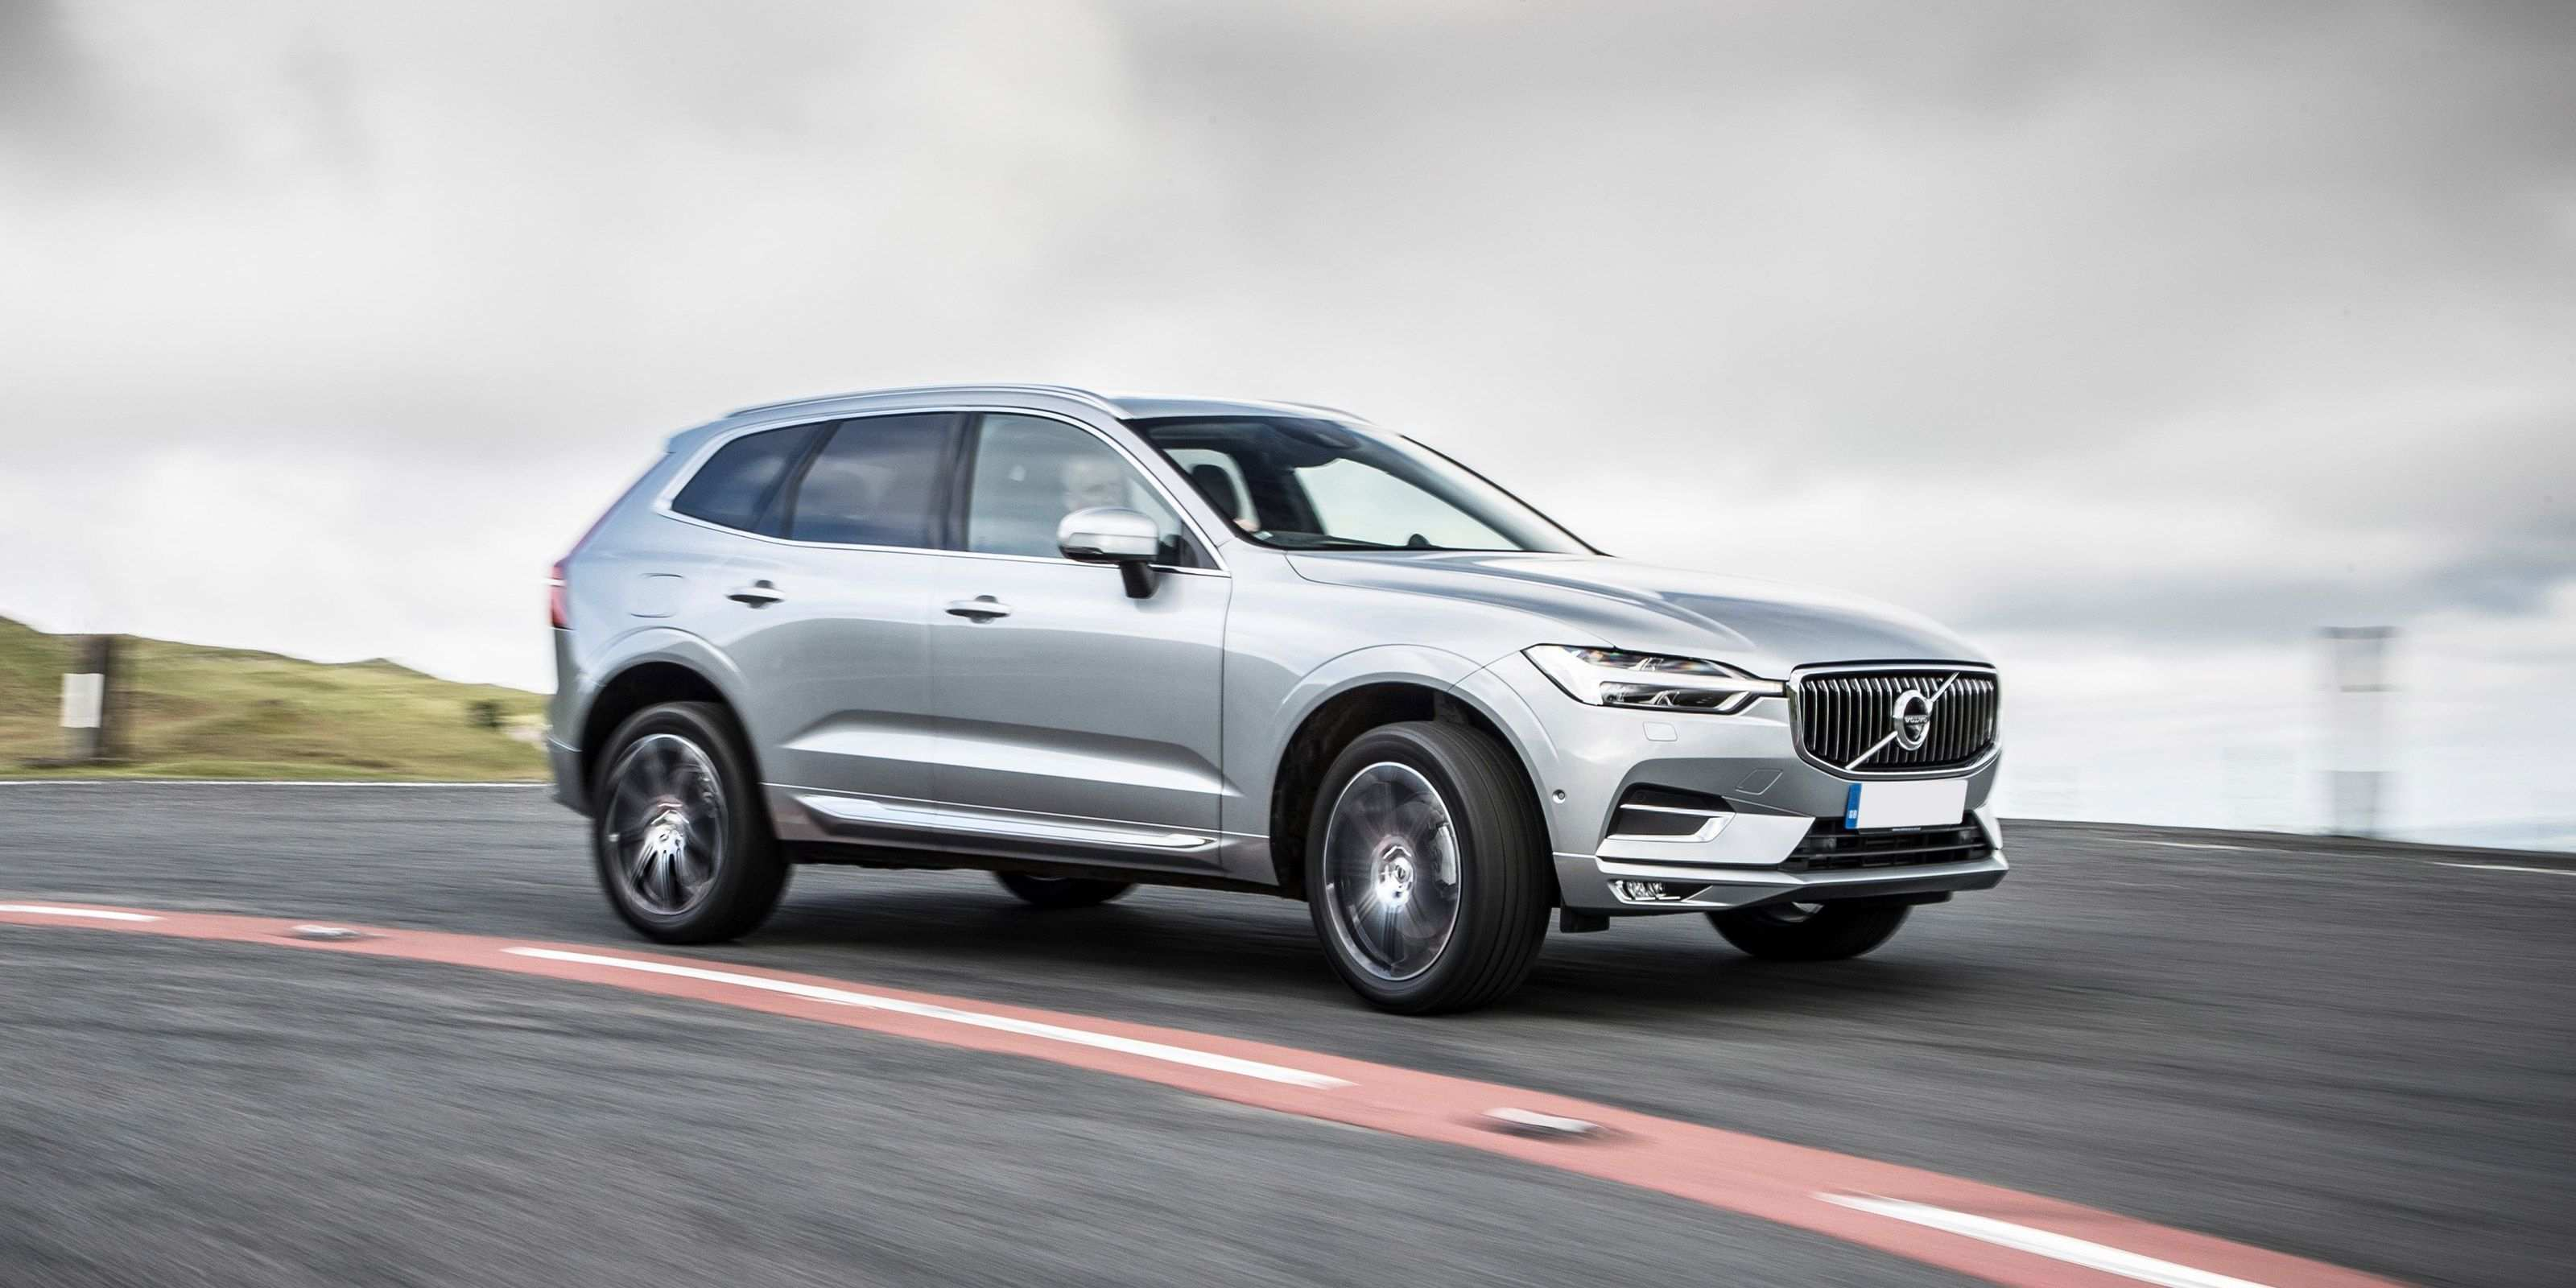 35 All New Volvo Xc60 2019 Osmium Grey Performance with Volvo Xc60 2019 Osmium Grey